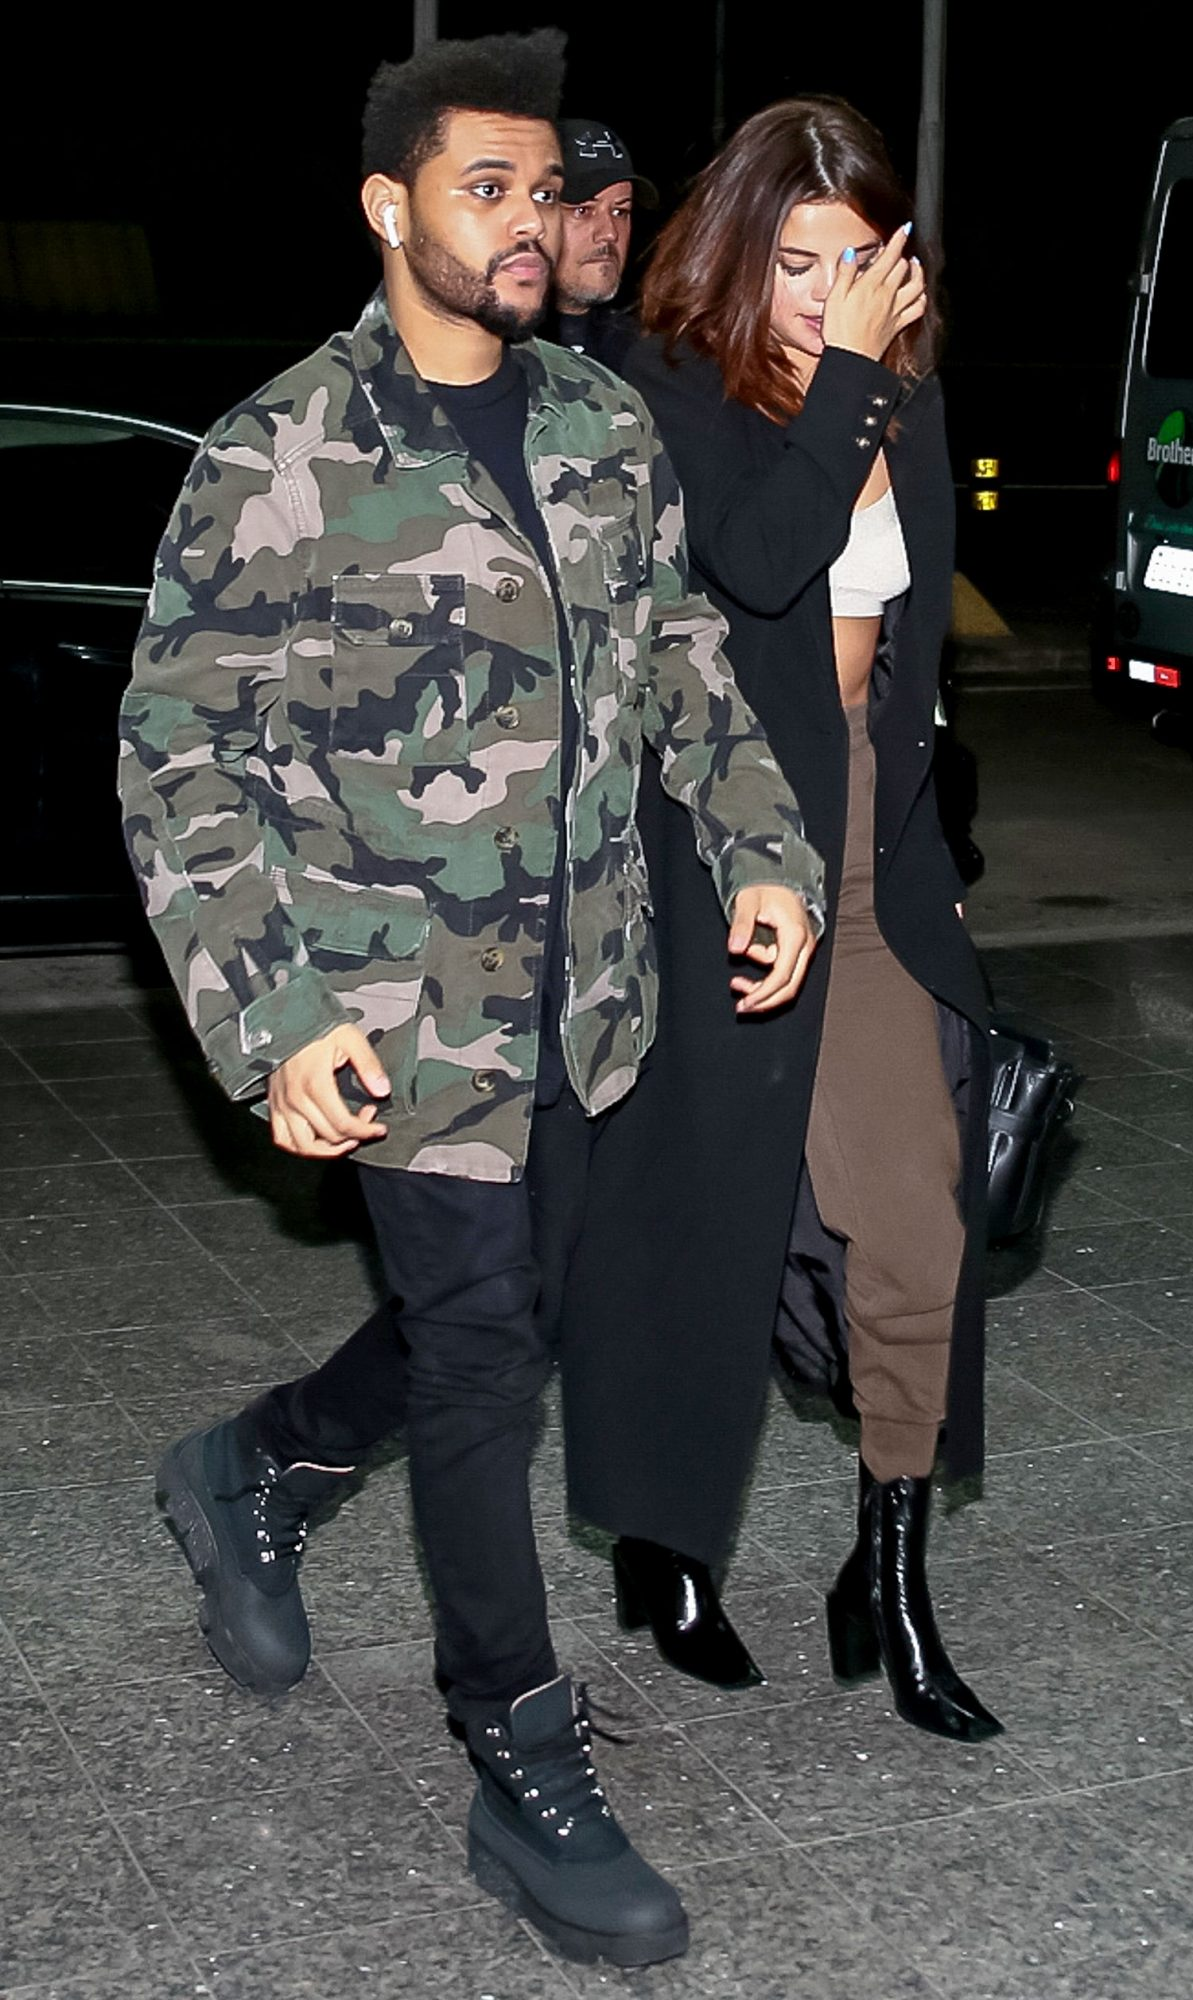 *EXCLUSIVE* The Weeknd and Selena Gomez keep close on their way to a flight after Lollapalooza Brazil